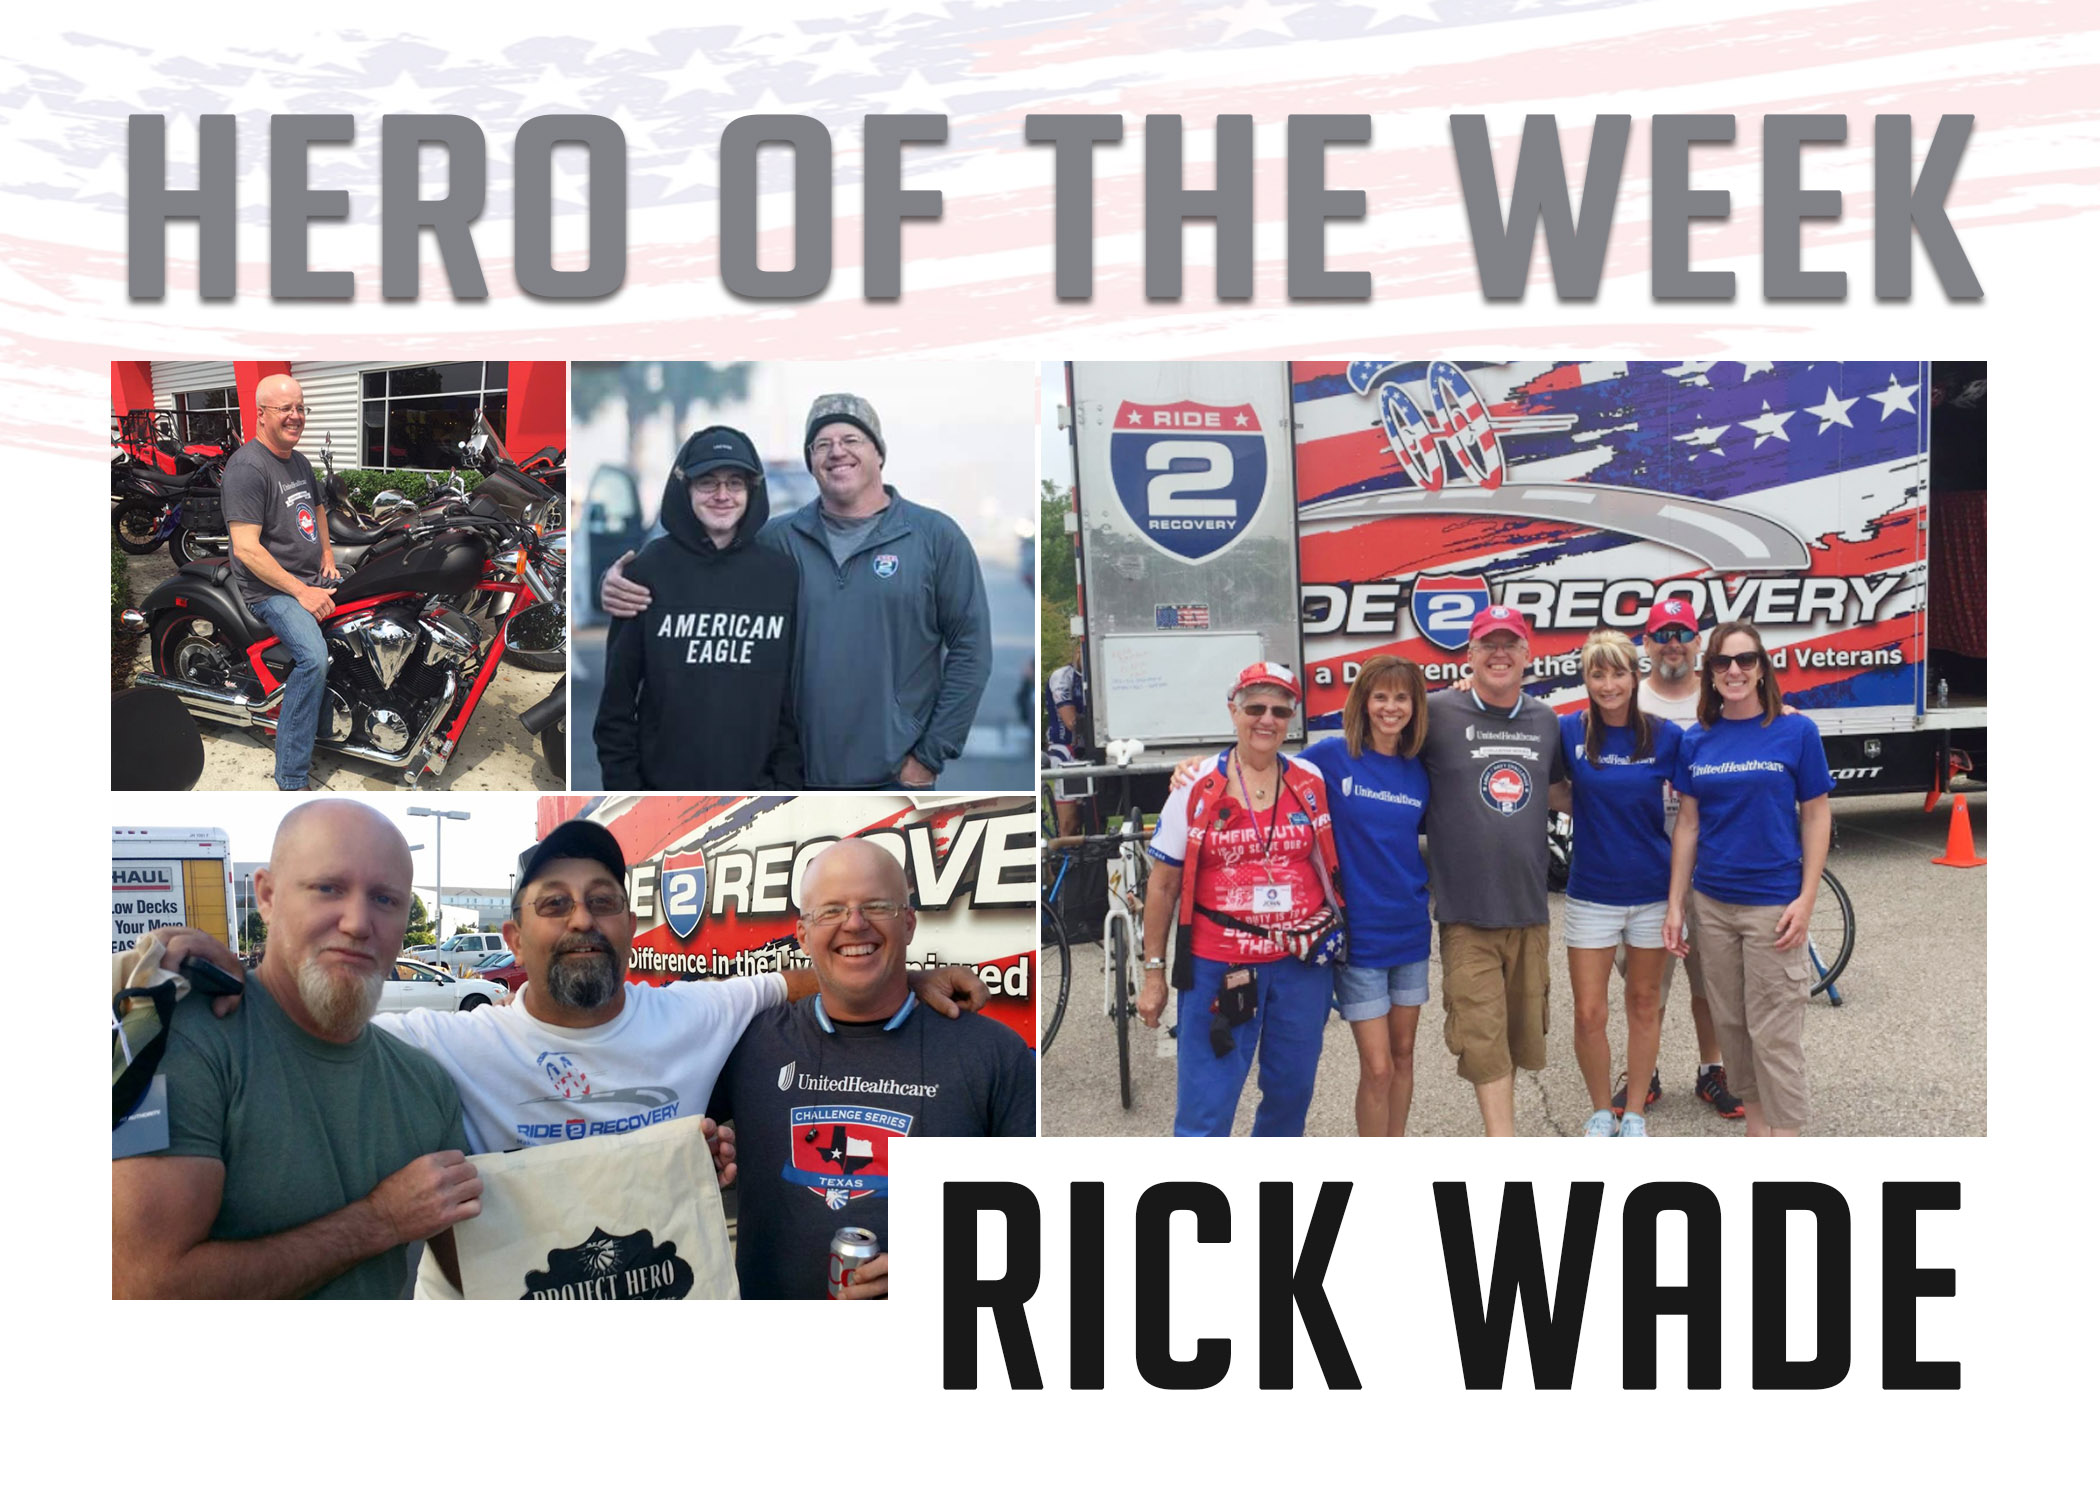 Hero of the Week: Rick Wade